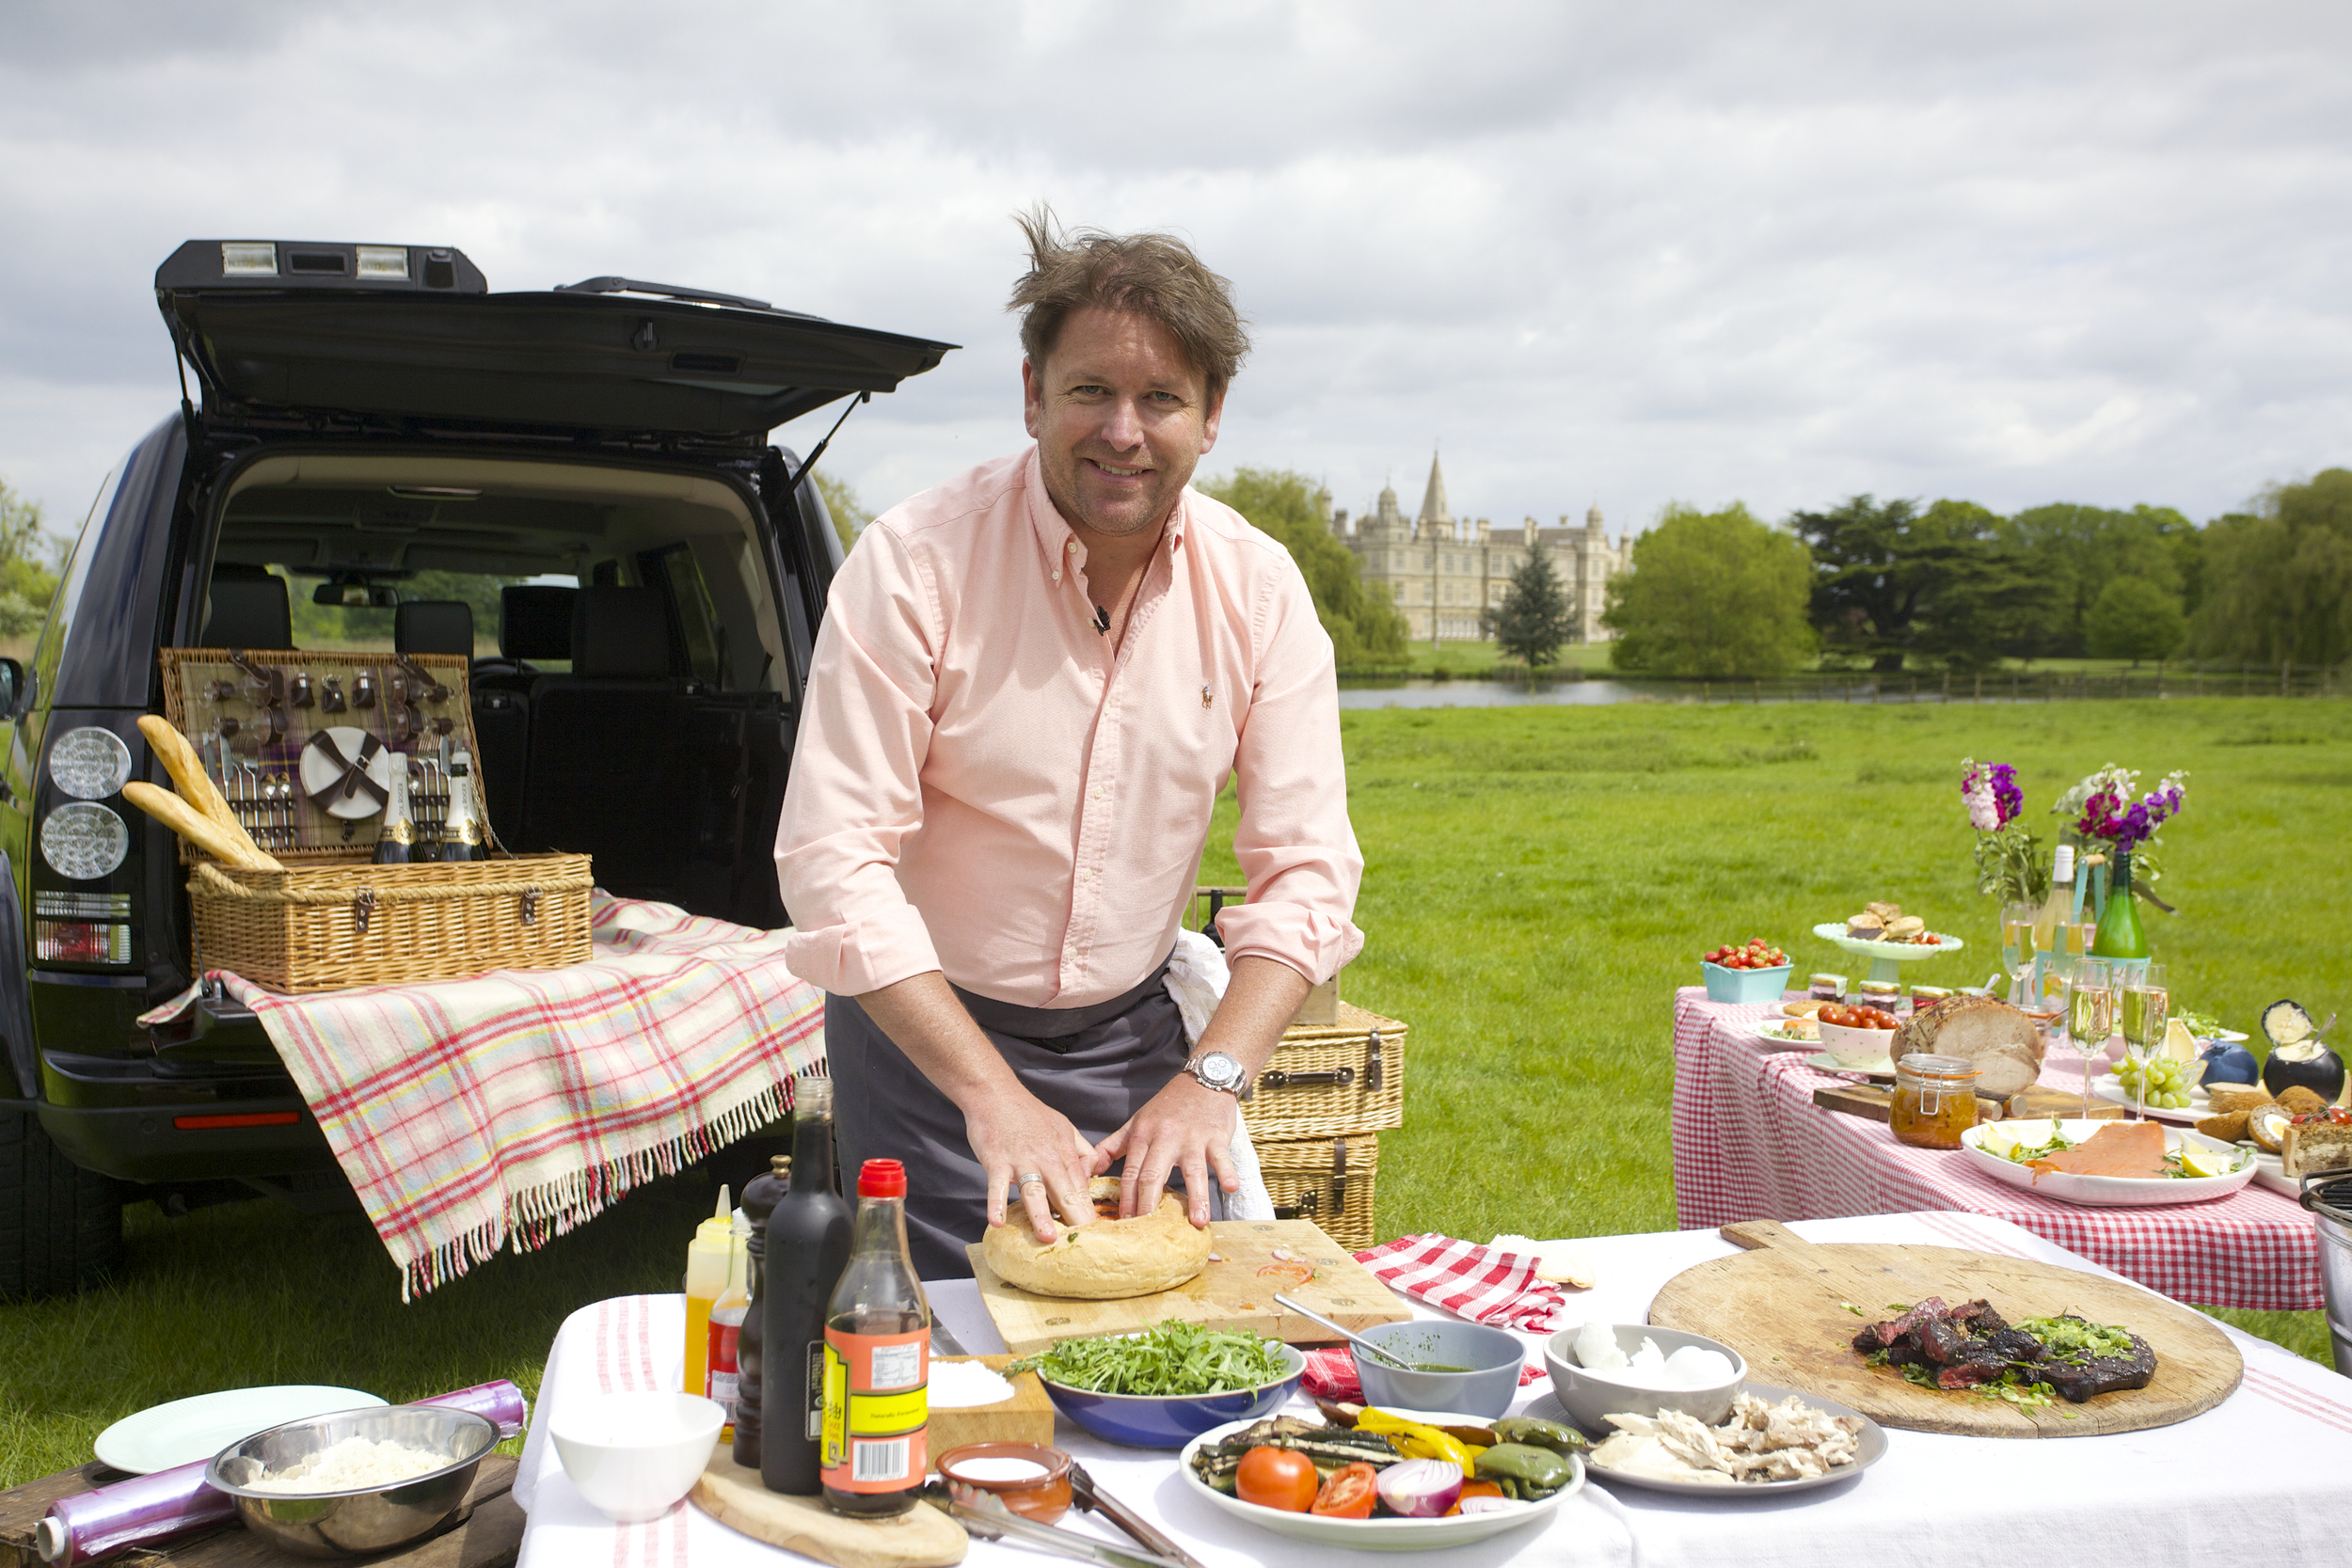 James Martin working with Land Rover come up with two tasty recipes in time for Burghley